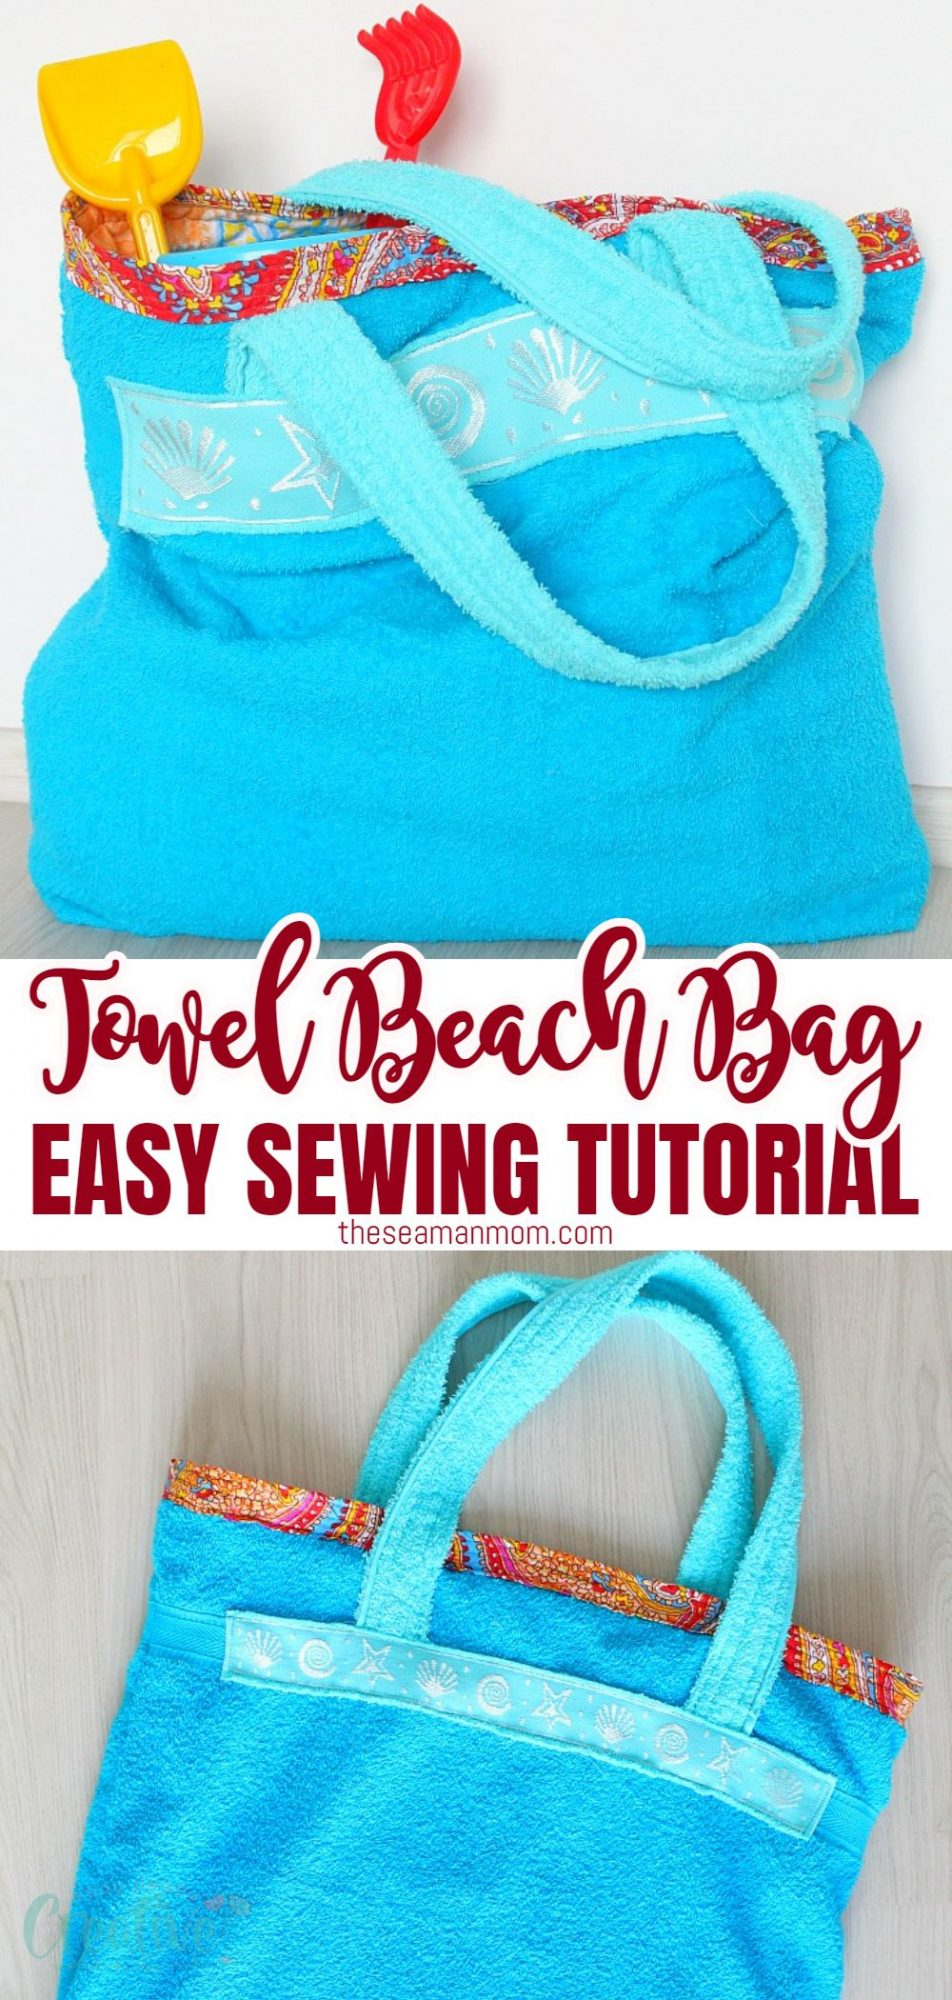 Towel bag